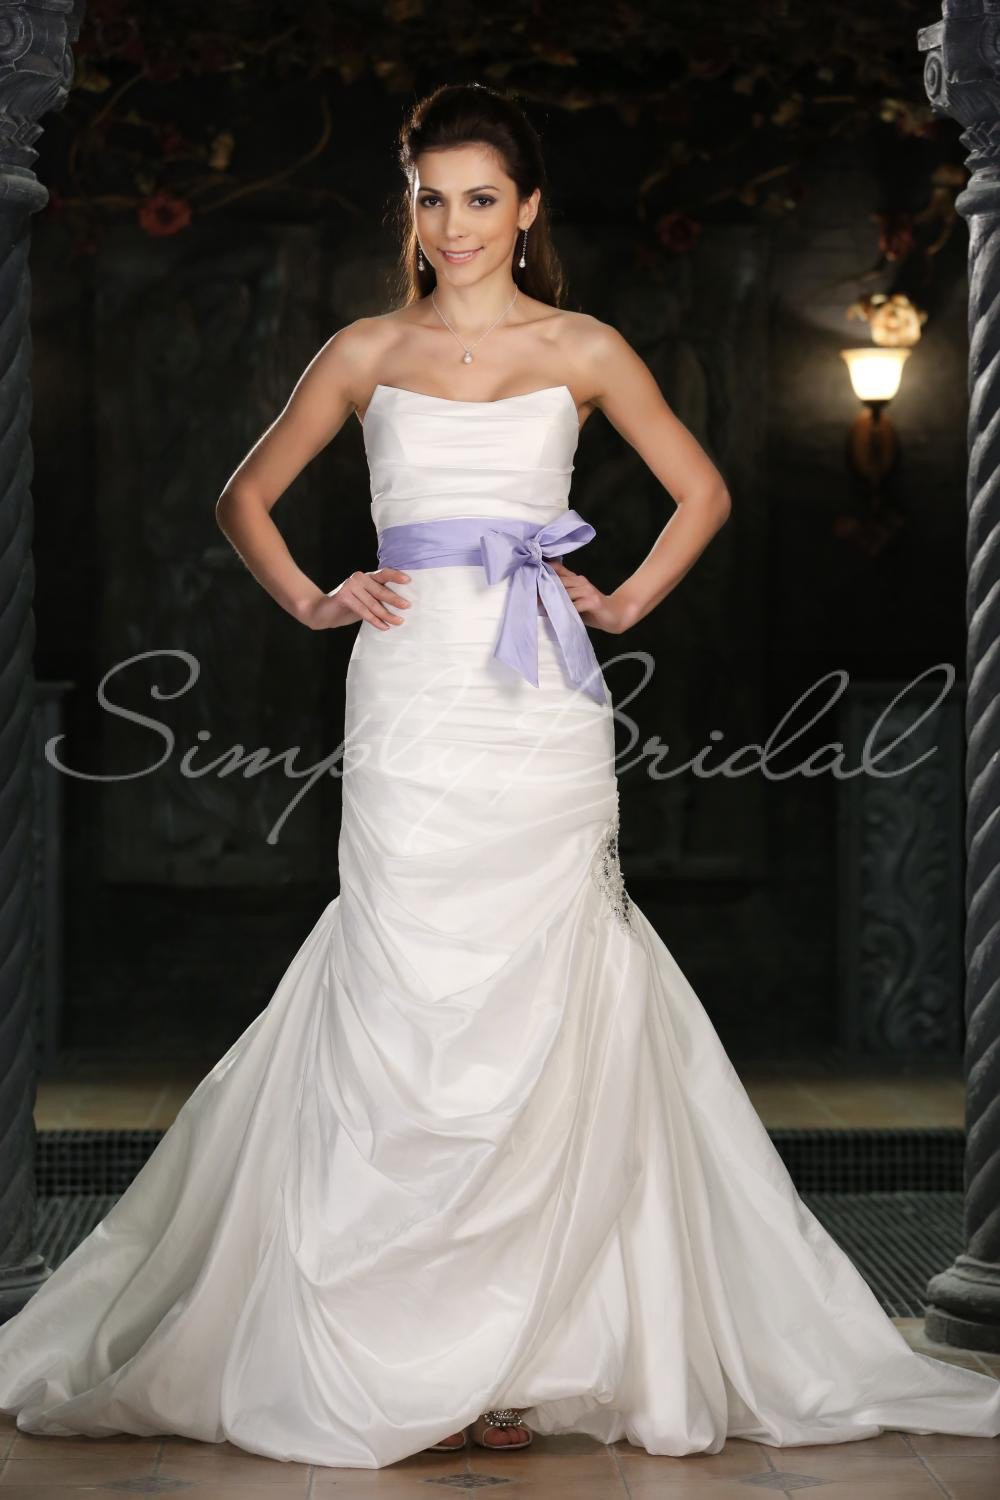 Simply bridal delilah new wedding dress on sale 42 off for Simply white wedding dresses